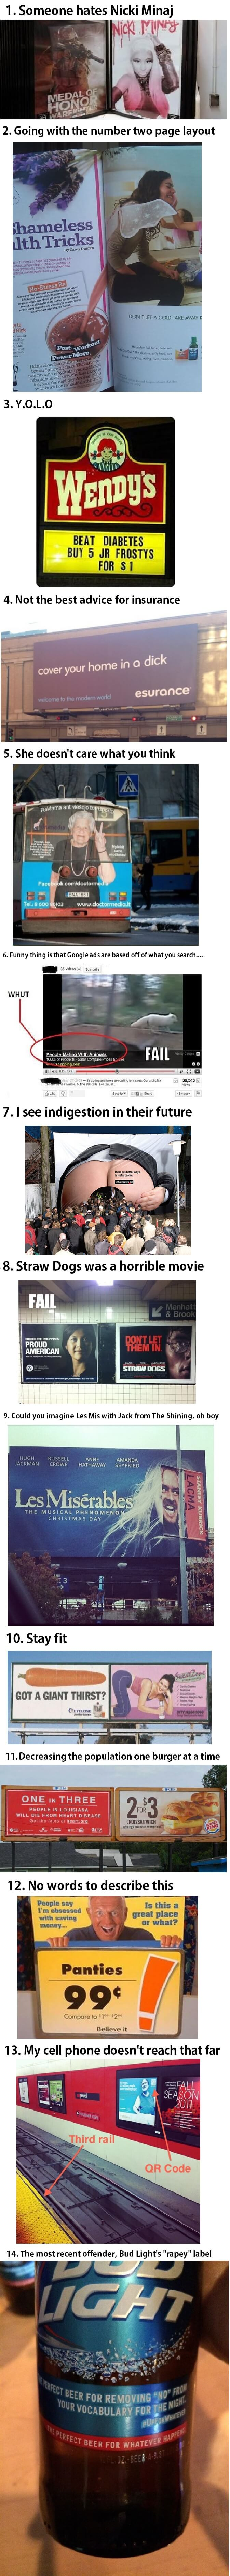 advertising fails that will make you do a double take